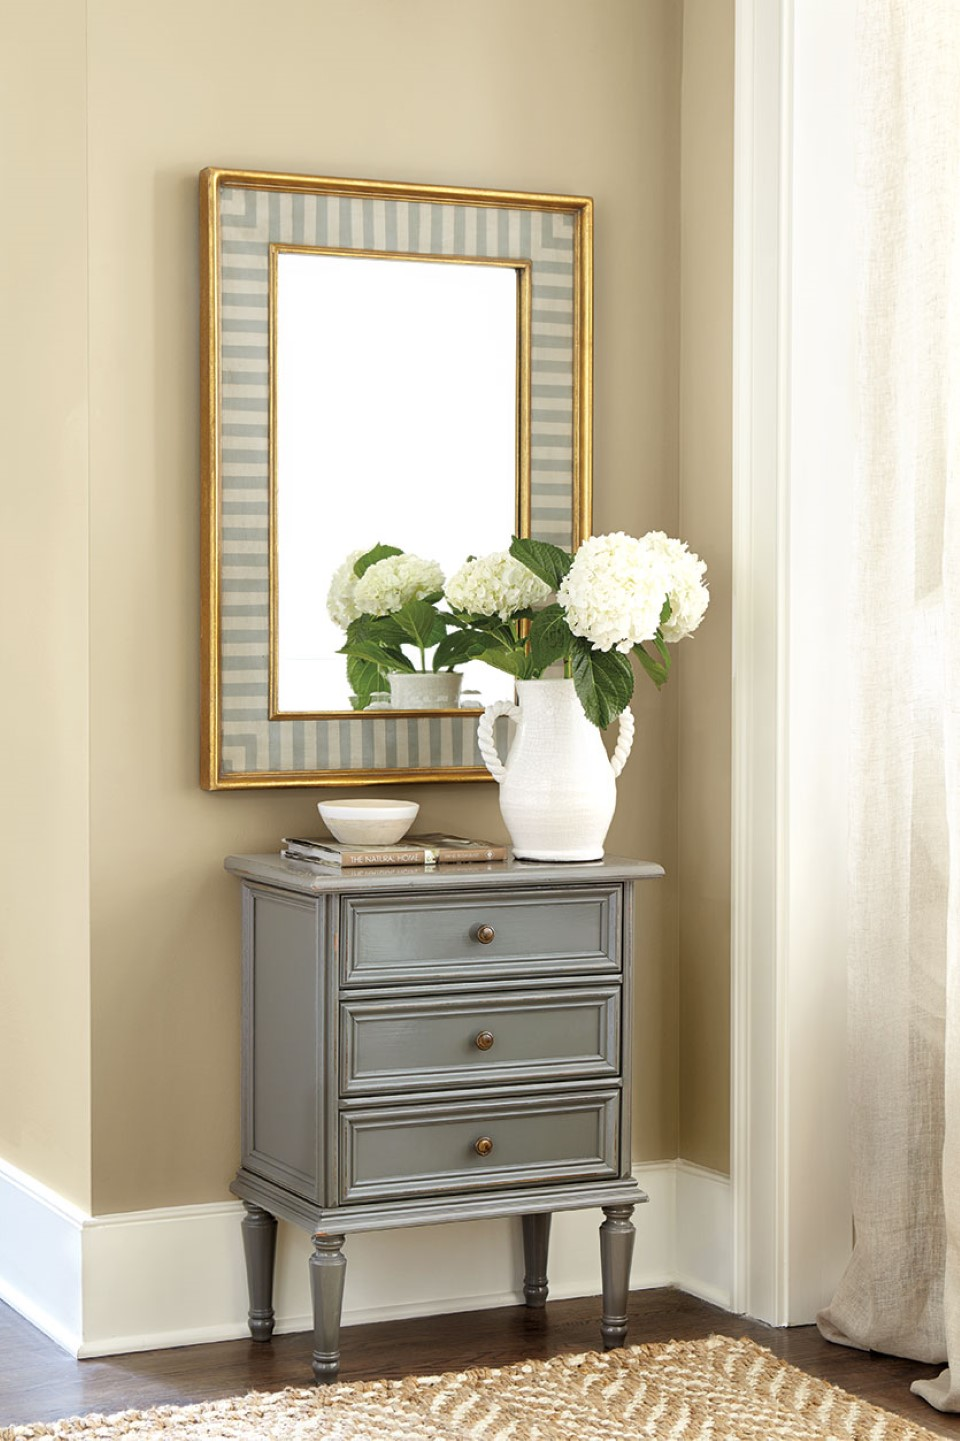 Small Console Table for Hallway - Perfect Icon to Fill the ...